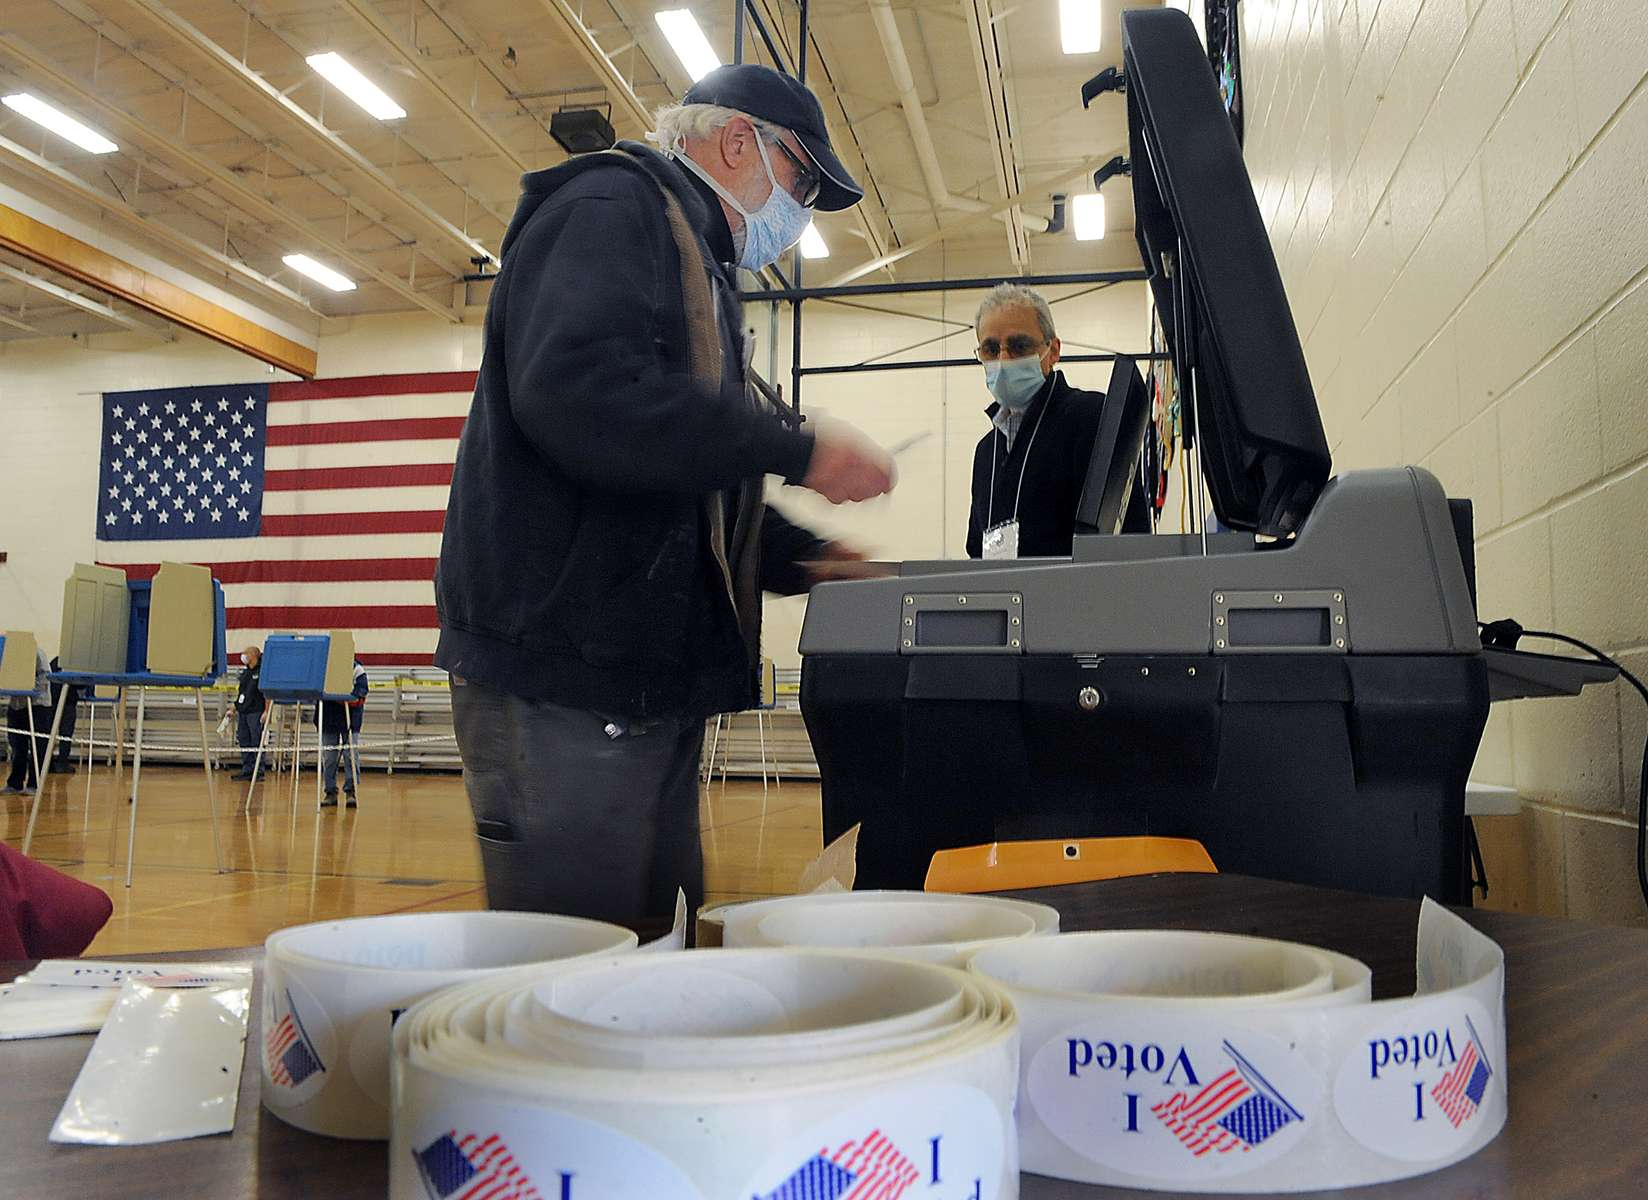 Northborough resident John Derienzo casts his ballot at the Melican Middle School voting place Nov. 3, 2020.  At right is election worker AJ Incorvaia.  [Daily News and Wicked Local Staff Photo/Art Illman]